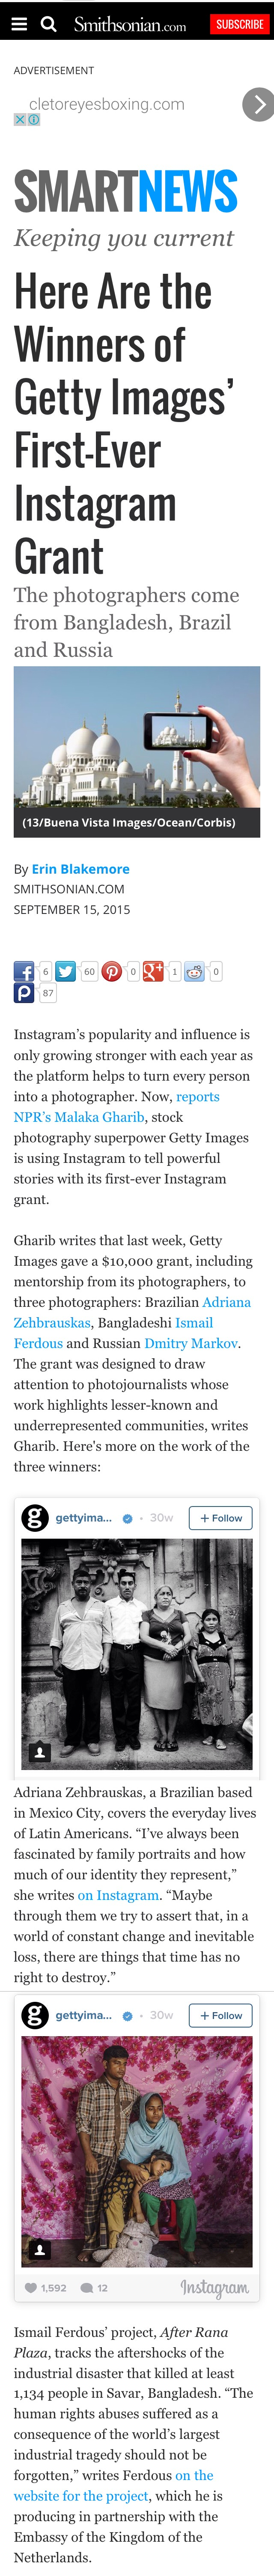 Here Are the Winners of Getty Images' First-Ever Instagram Grant